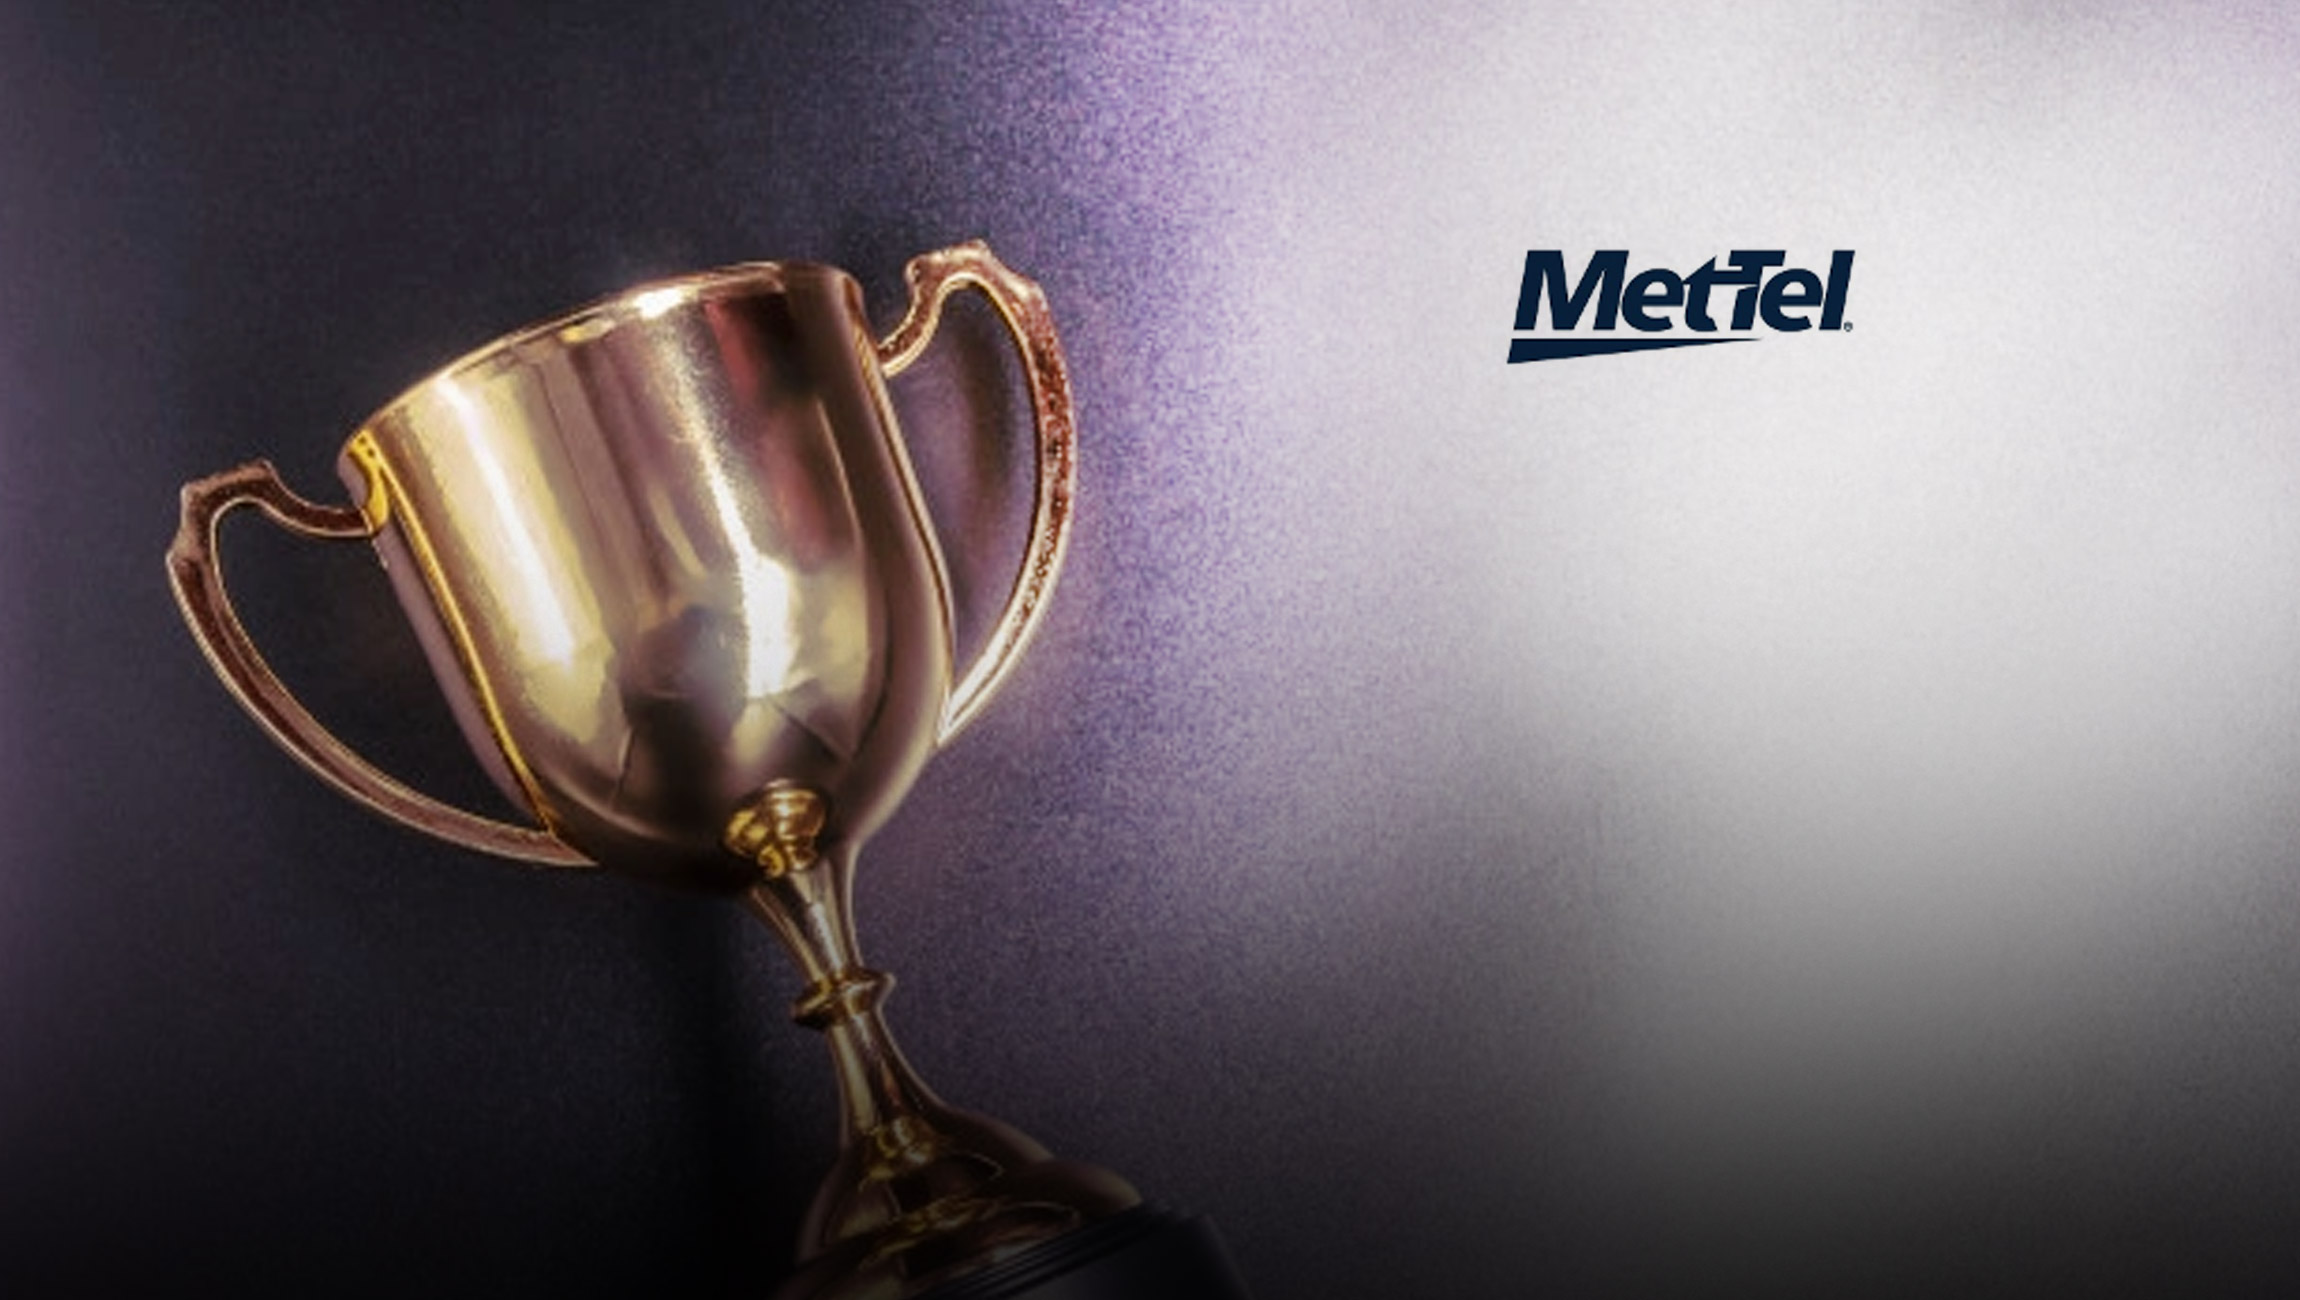 MetTel Employees Win Stevie® Awards for Back-Office Customer Service Professional of the Year and Front-Line Customer Service Professional of the Year